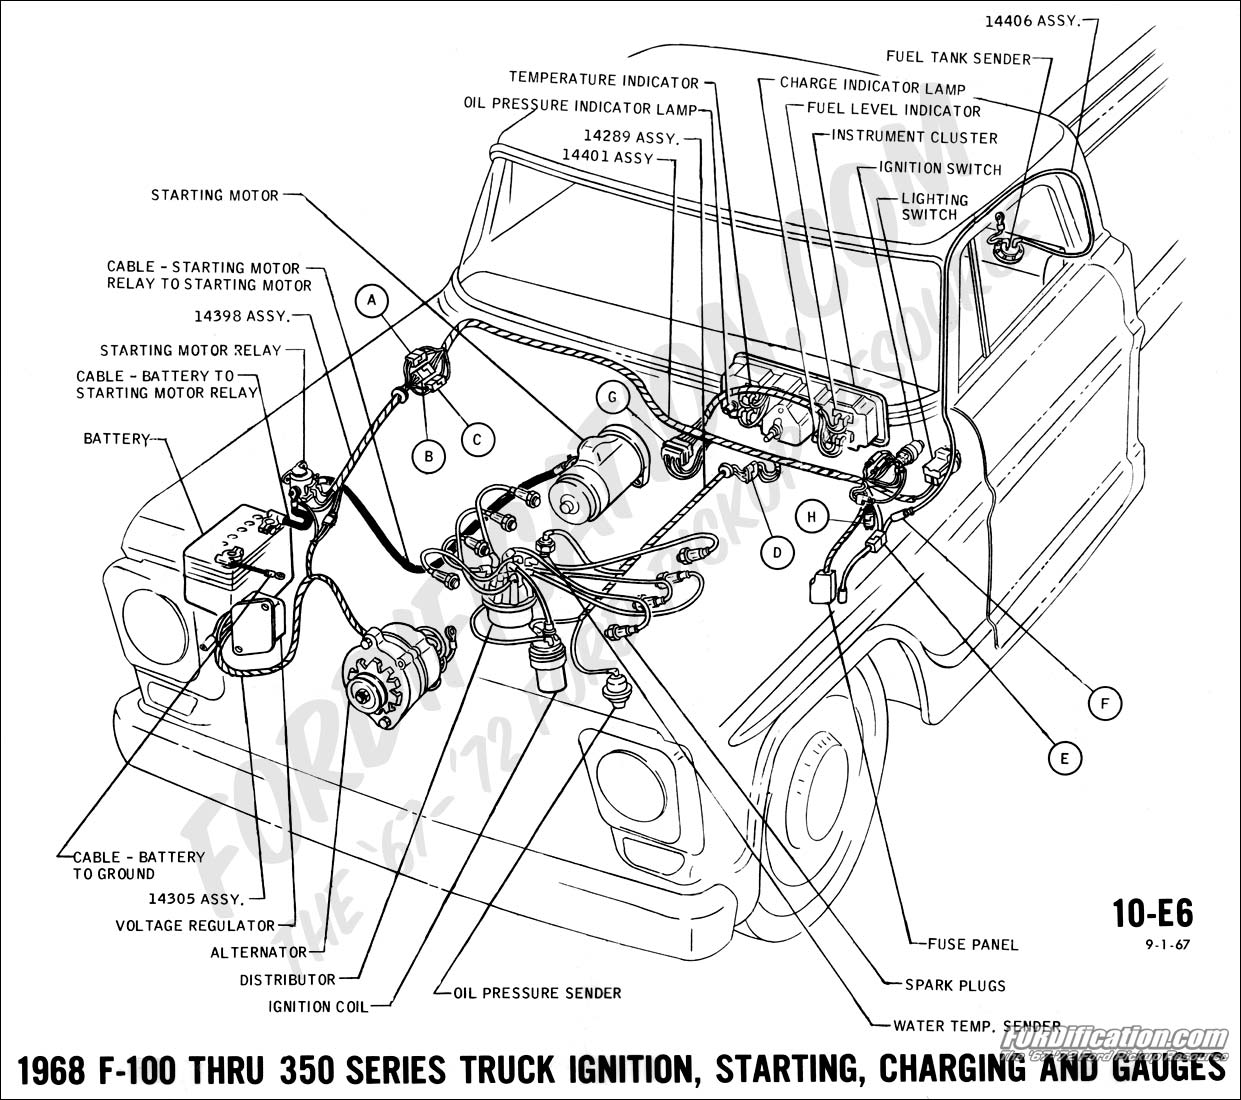 Ford Truck Technical Drawings And Schematics Section H Wiring An Outlet From Fuse Box 1968 F 100 Thru 350 Ignition Starting Charging Gauges